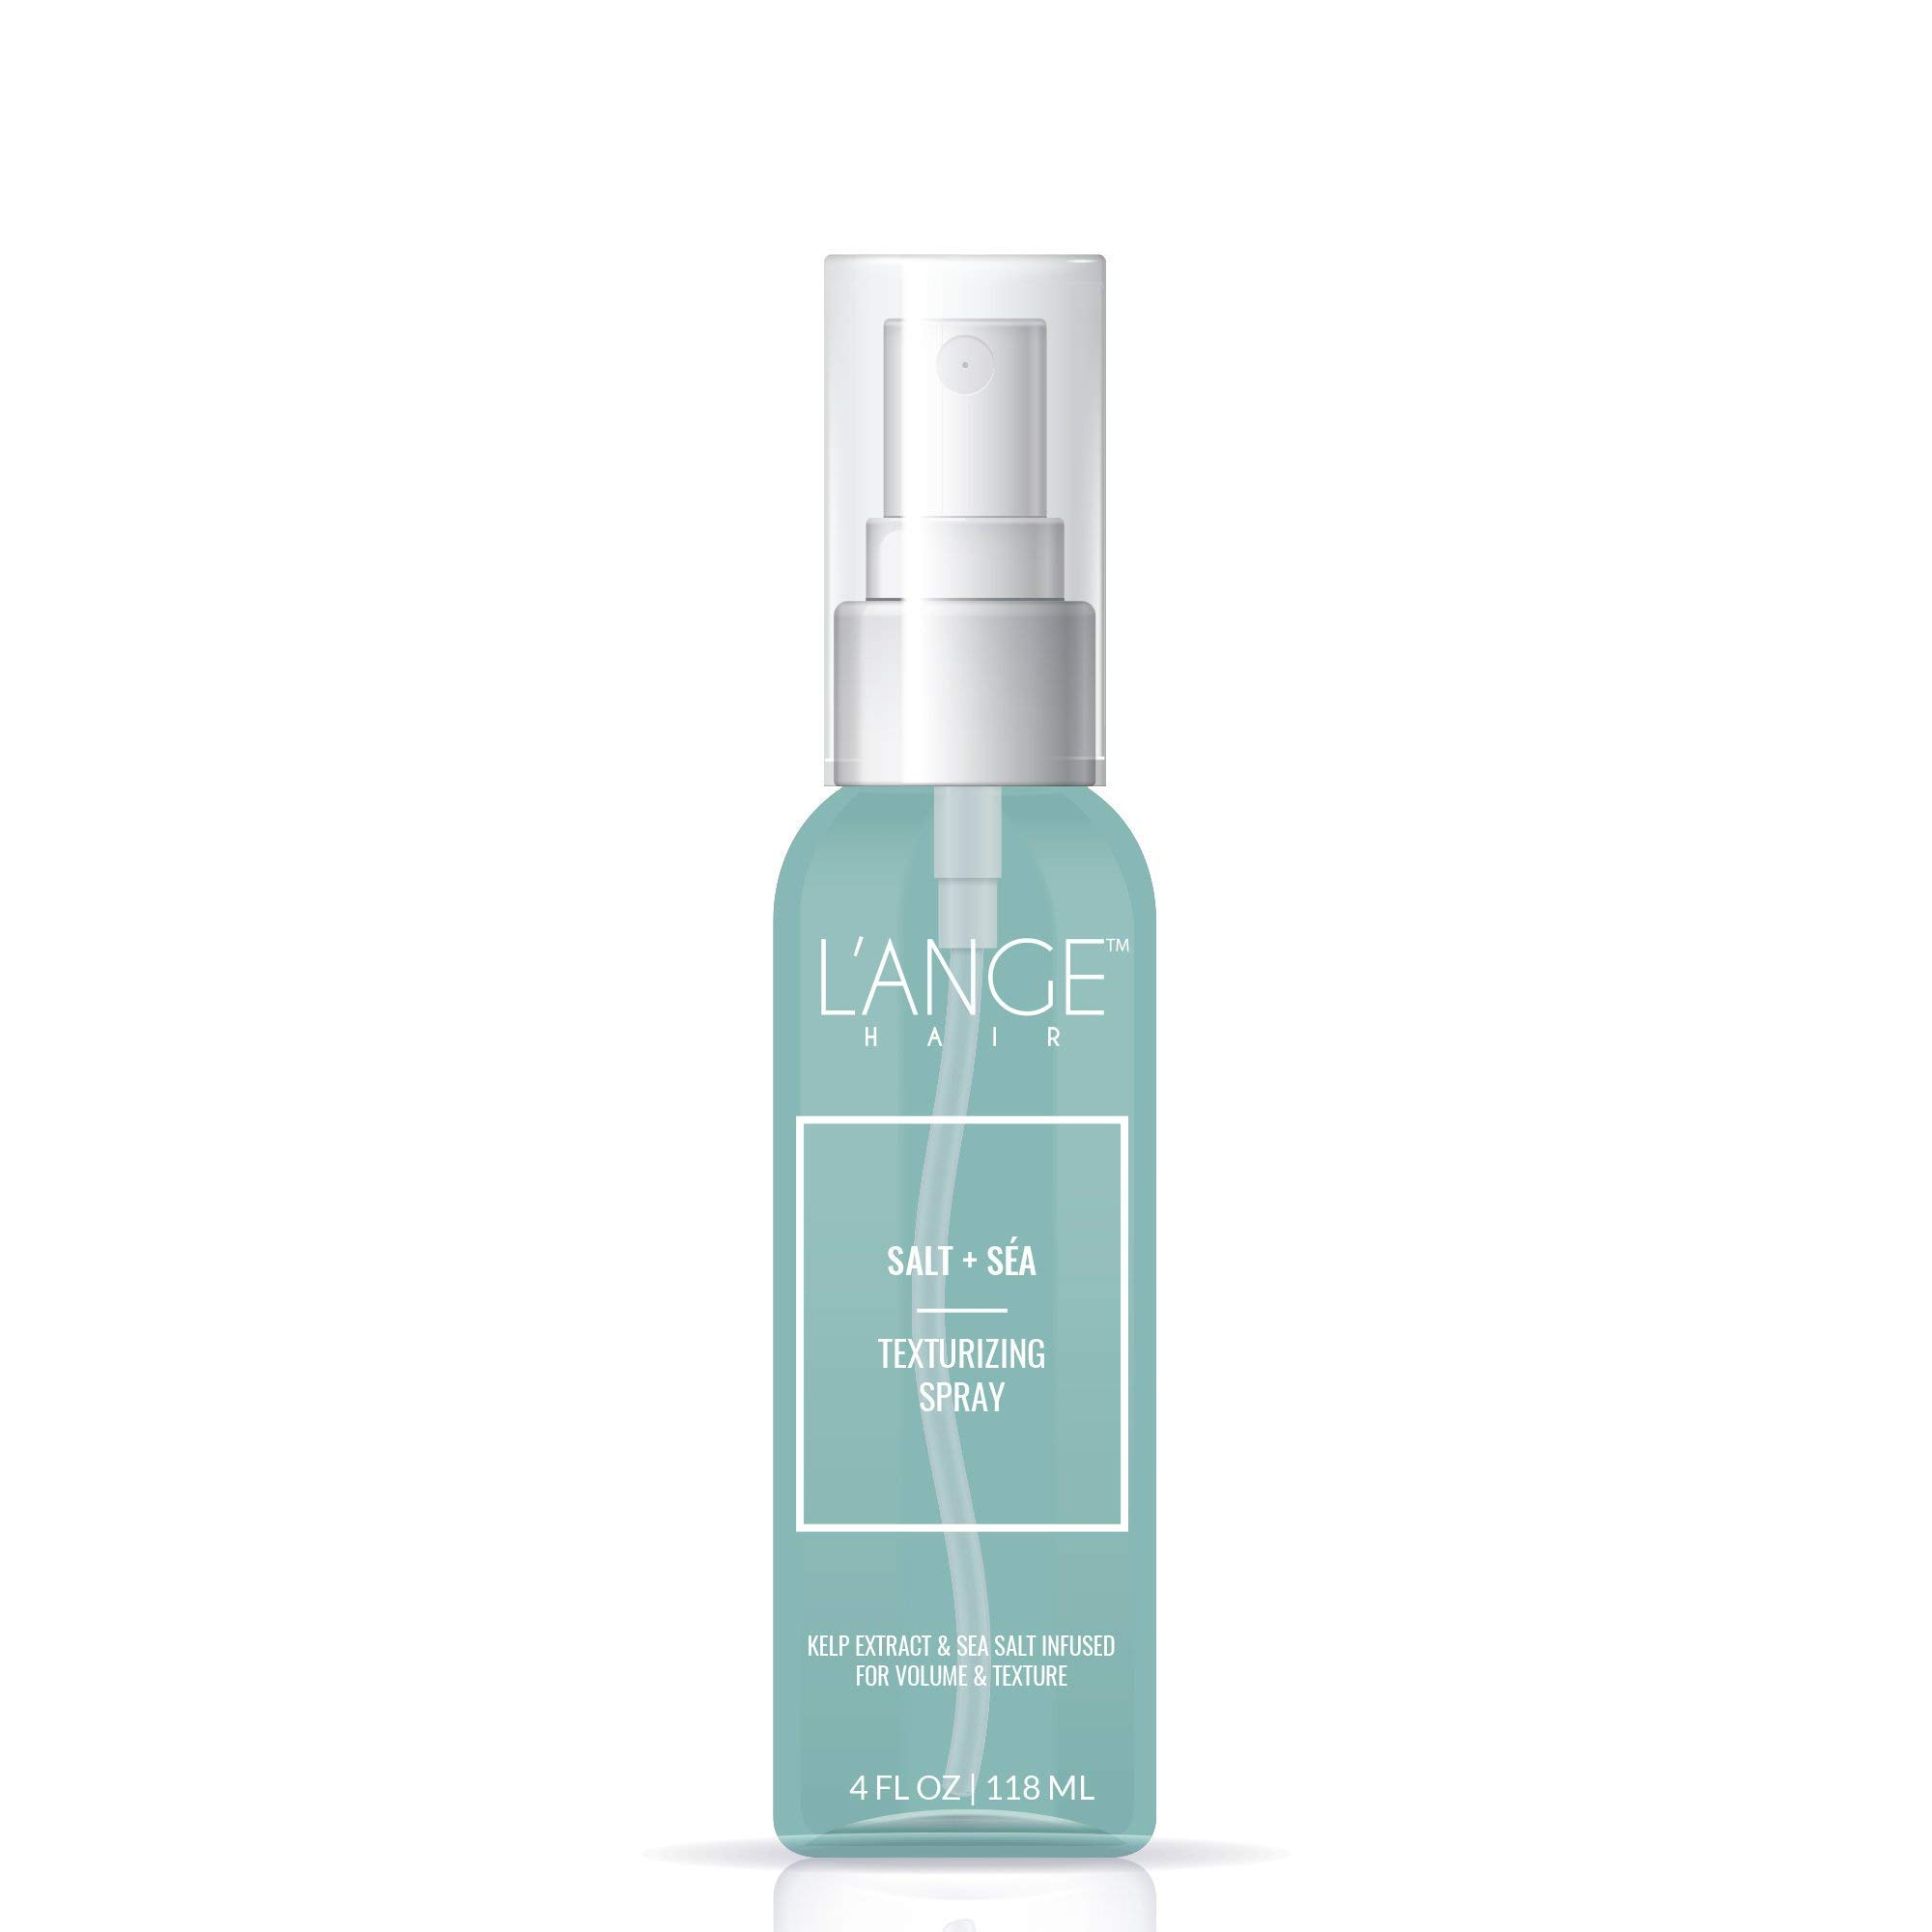 L'ange Hair Salt & Sea Texturizing Spray for Fuller Hair. 4 oz by L'ANGE HAIR